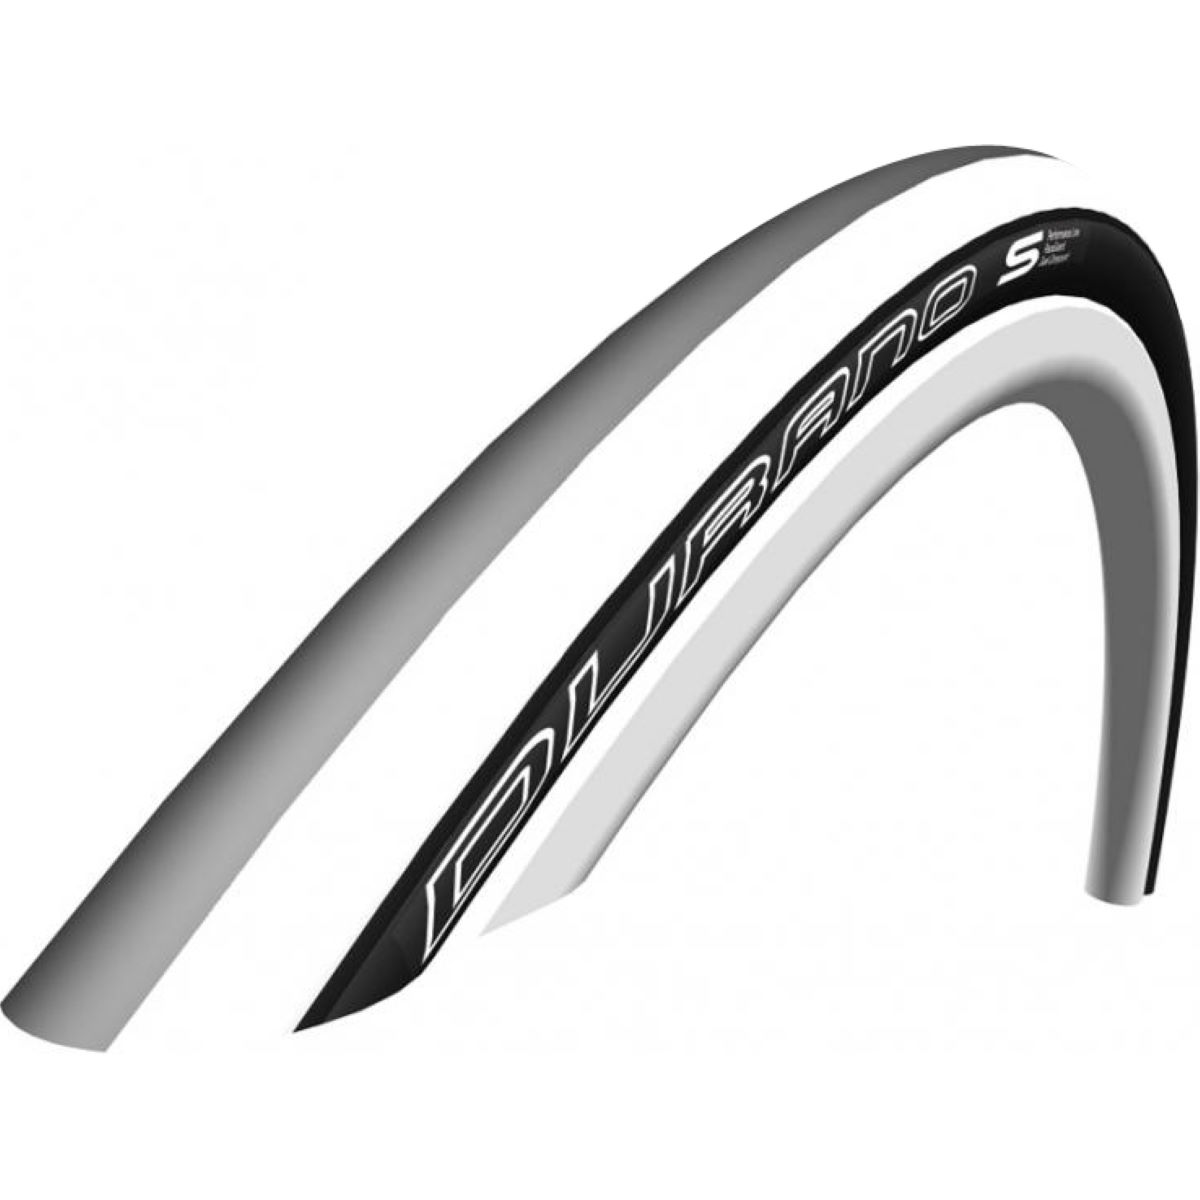 Schwalbe Durano S Performance Folding Tyre